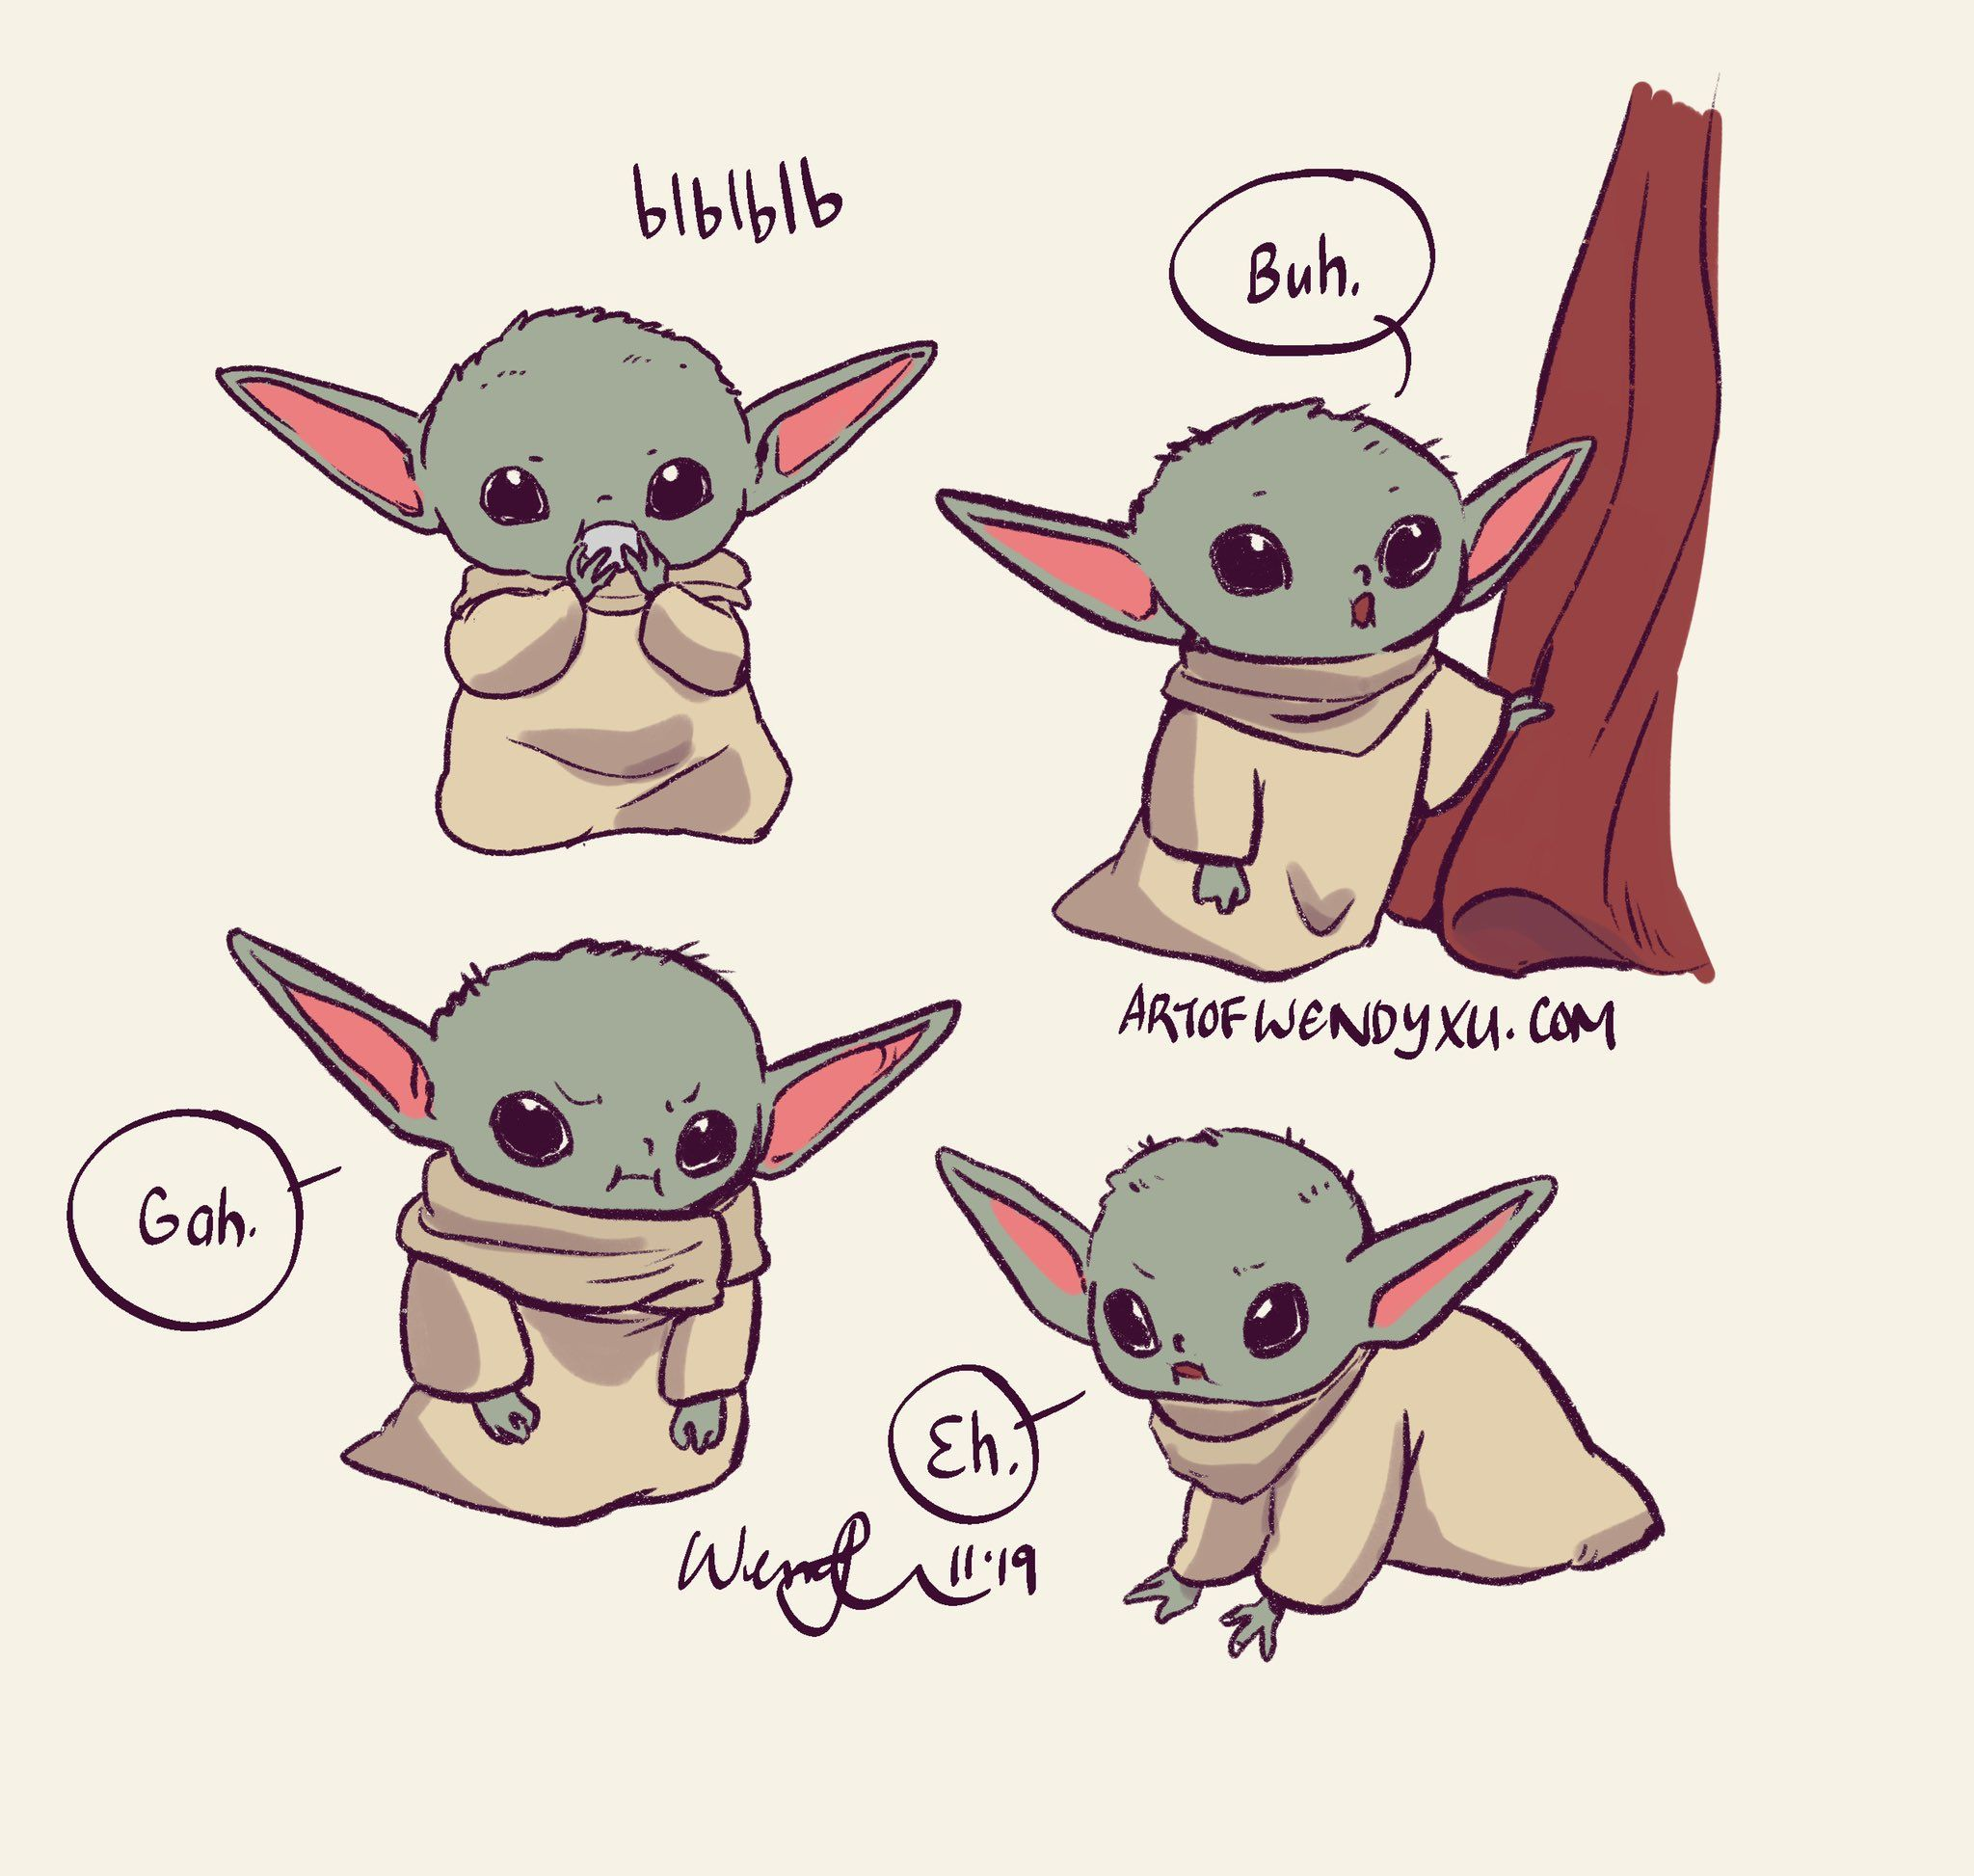 90 Baby Yoda Ideas In 2020 Yoda Star Wars Memes Yoda Meme Do you want to report this series as inappropriate content? 90 baby yoda ideas in 2020 yoda